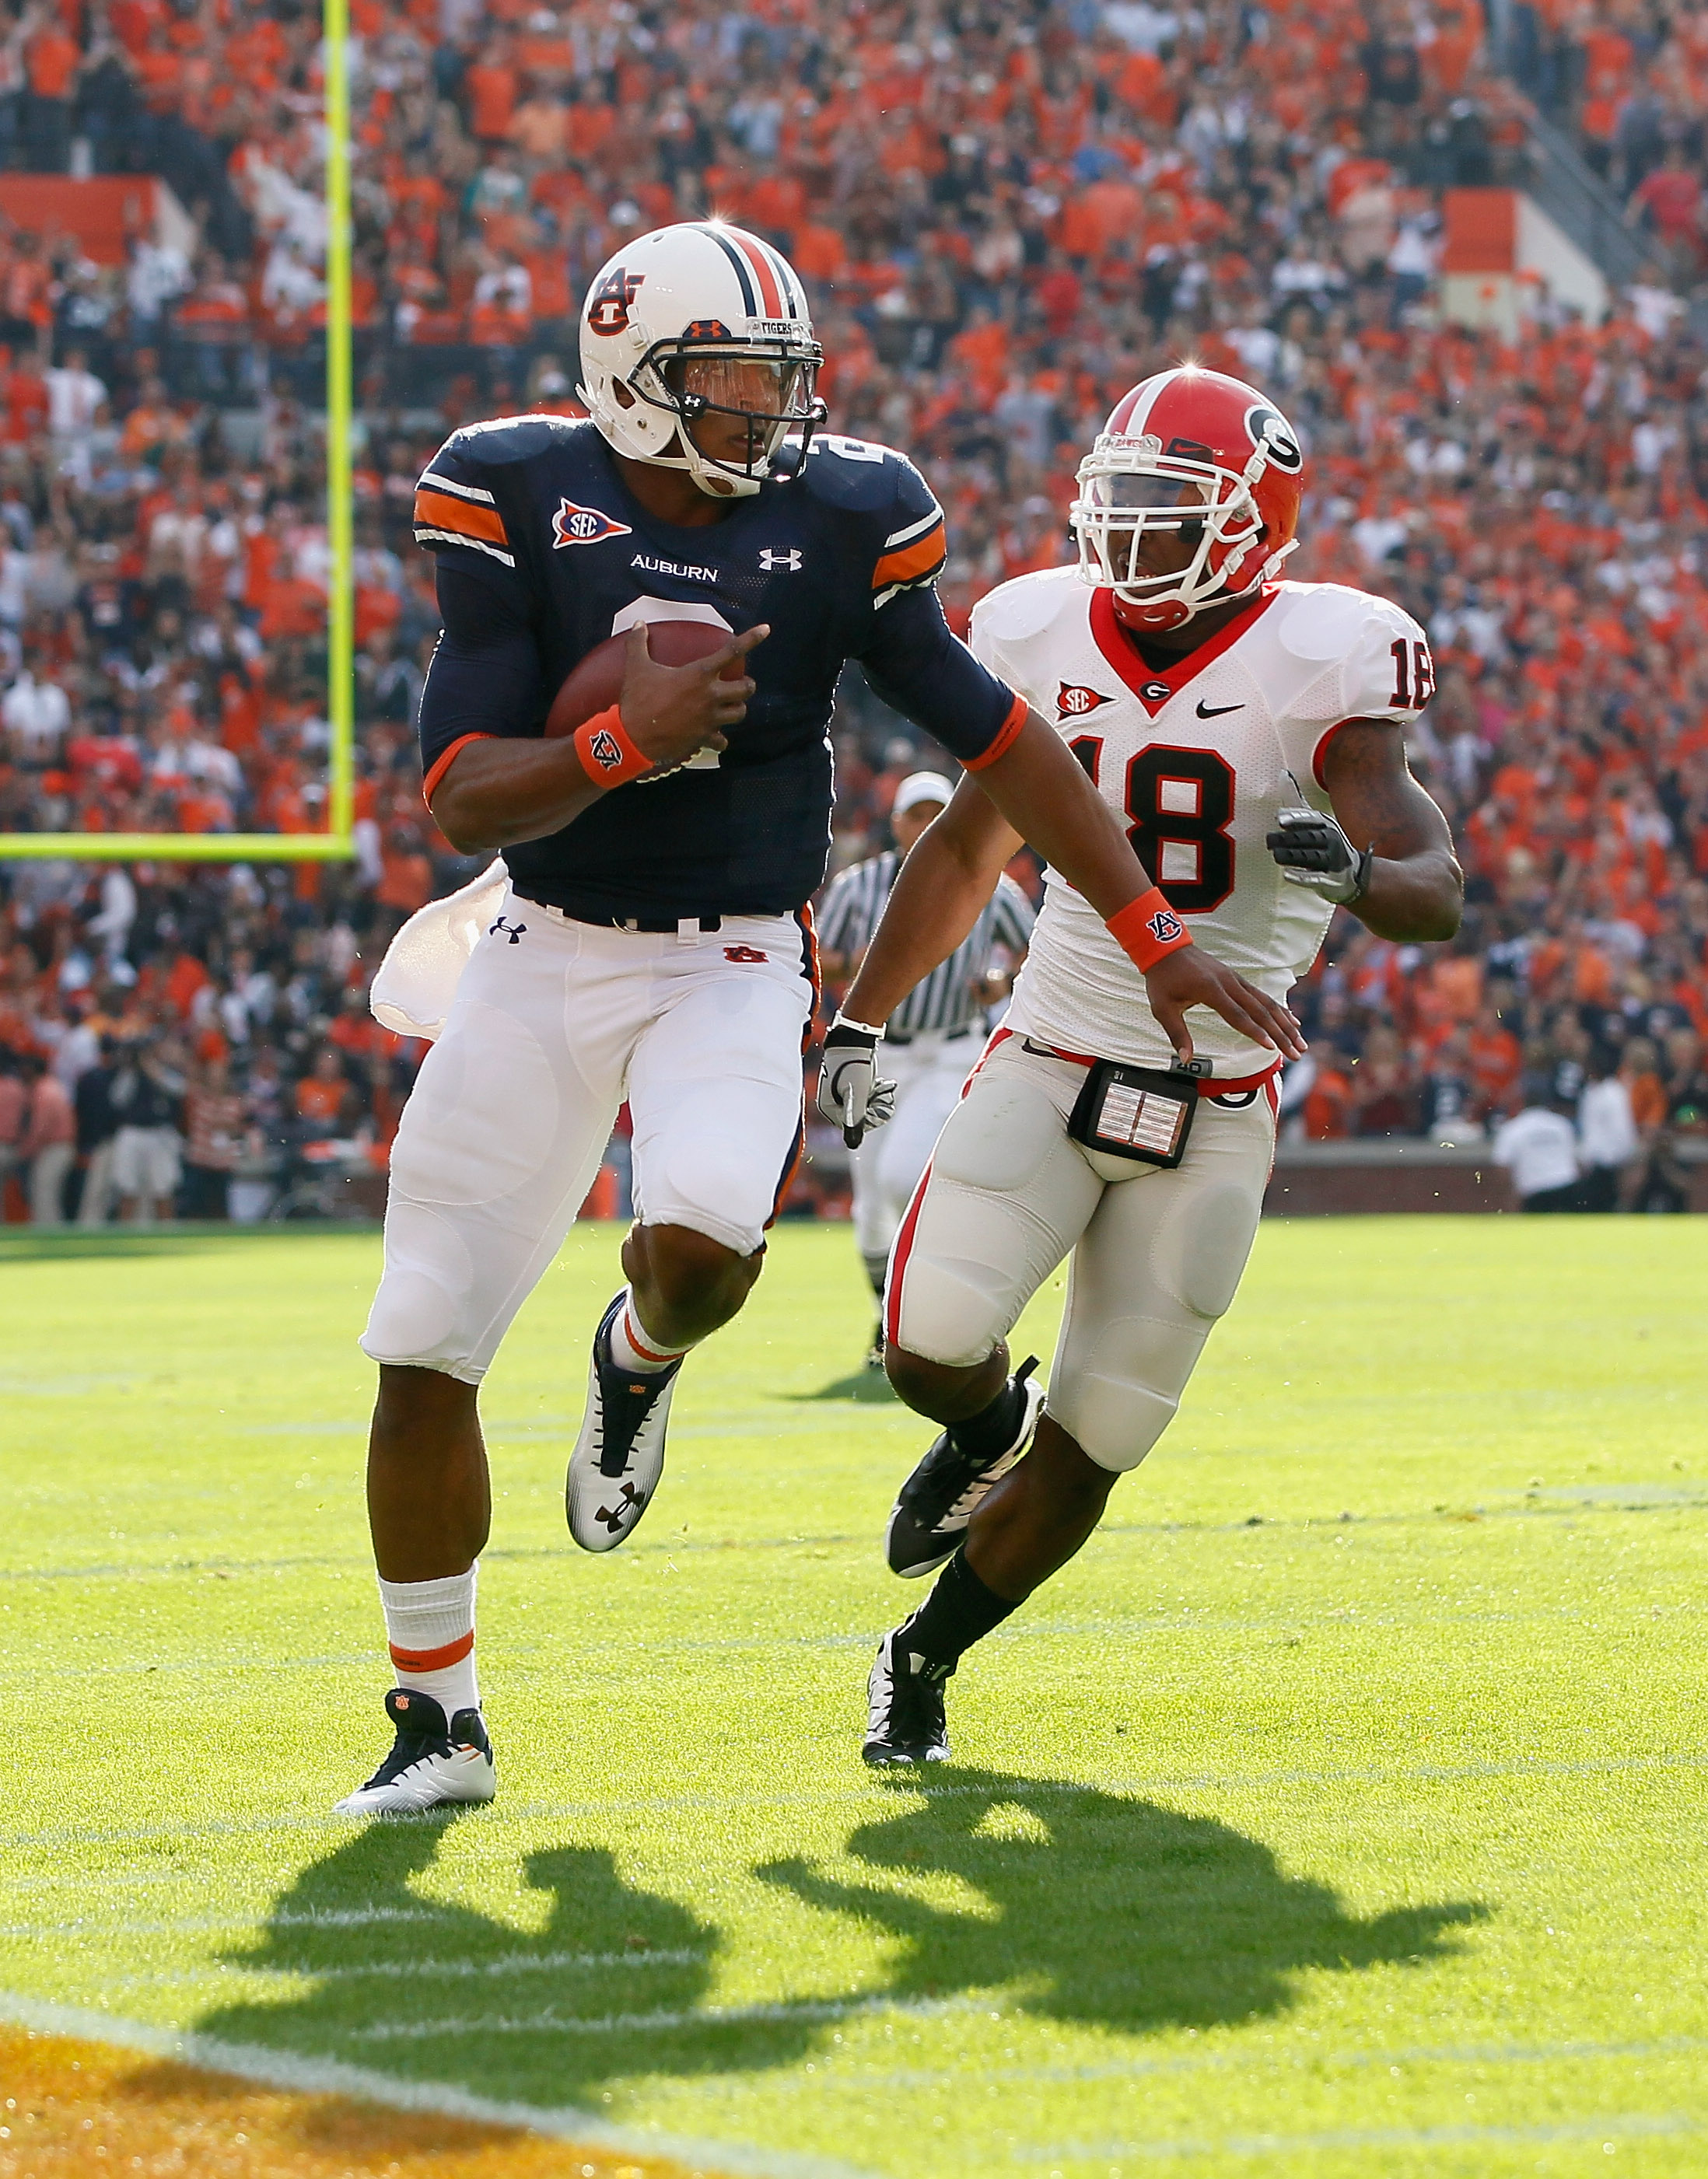 AUBURN, AL - NOVEMBER 13:  Quarterback Cam Newton #2 of the Auburn Tigers against Bacarri Rambo #18 of the Georgia Bulldogs at Jordan-Hare Stadium on November 13, 2010 in Auburn, Alabama.  (Photo by Kevin C. Cox/Getty Images)